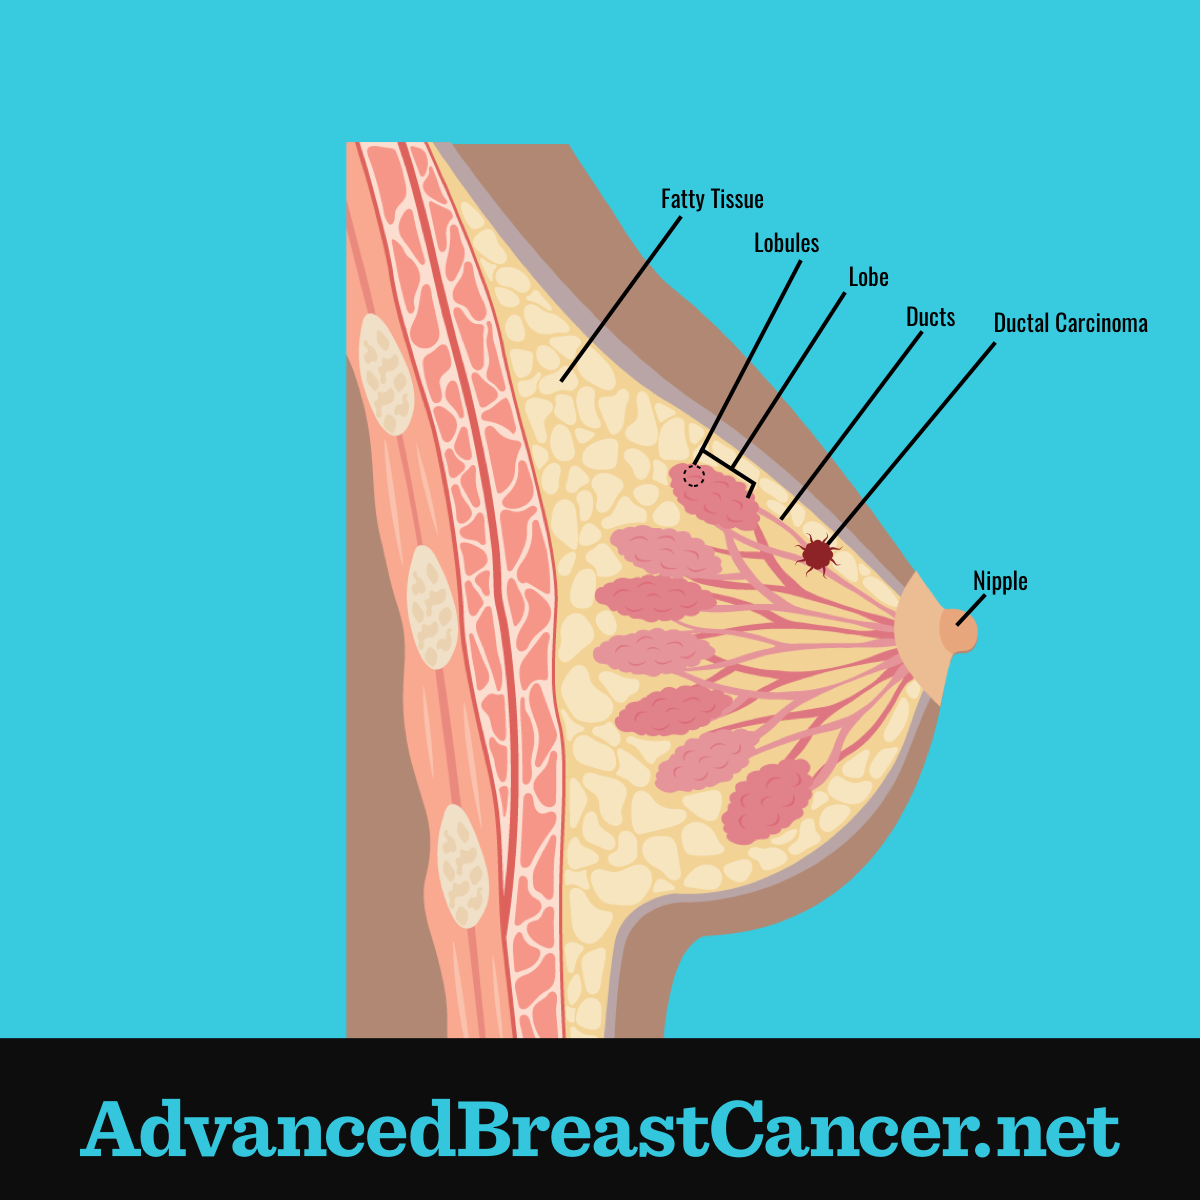 Ductal carcinoma shown in section of fatty tissue along a breast duct positioned between lobes and nipple.